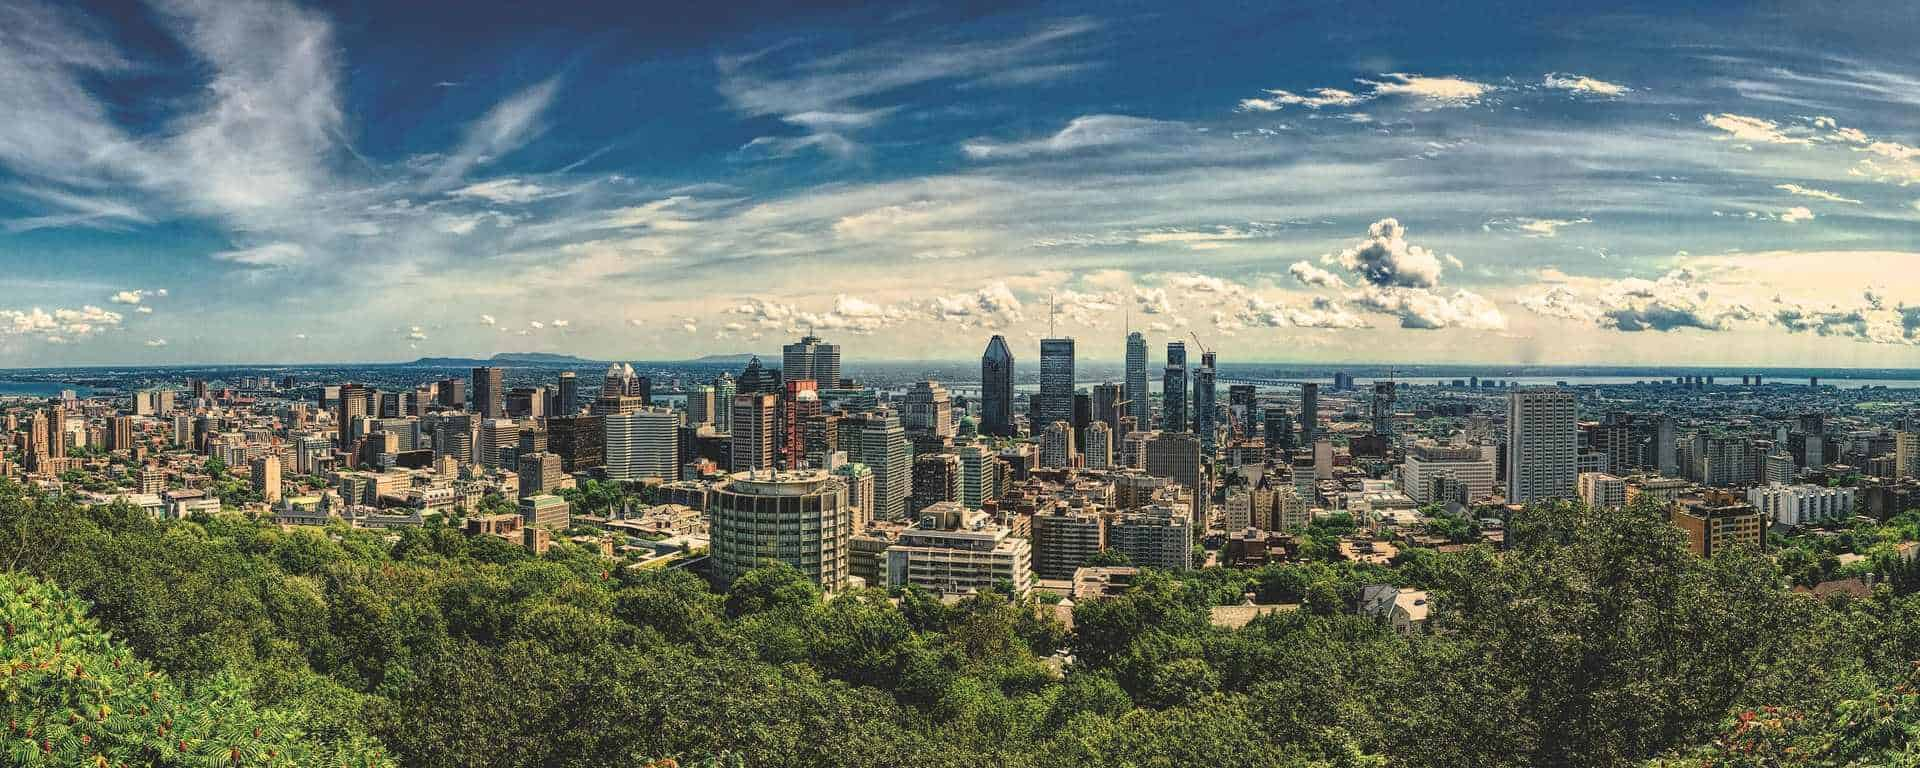 mont-royal-Montreal, Canada